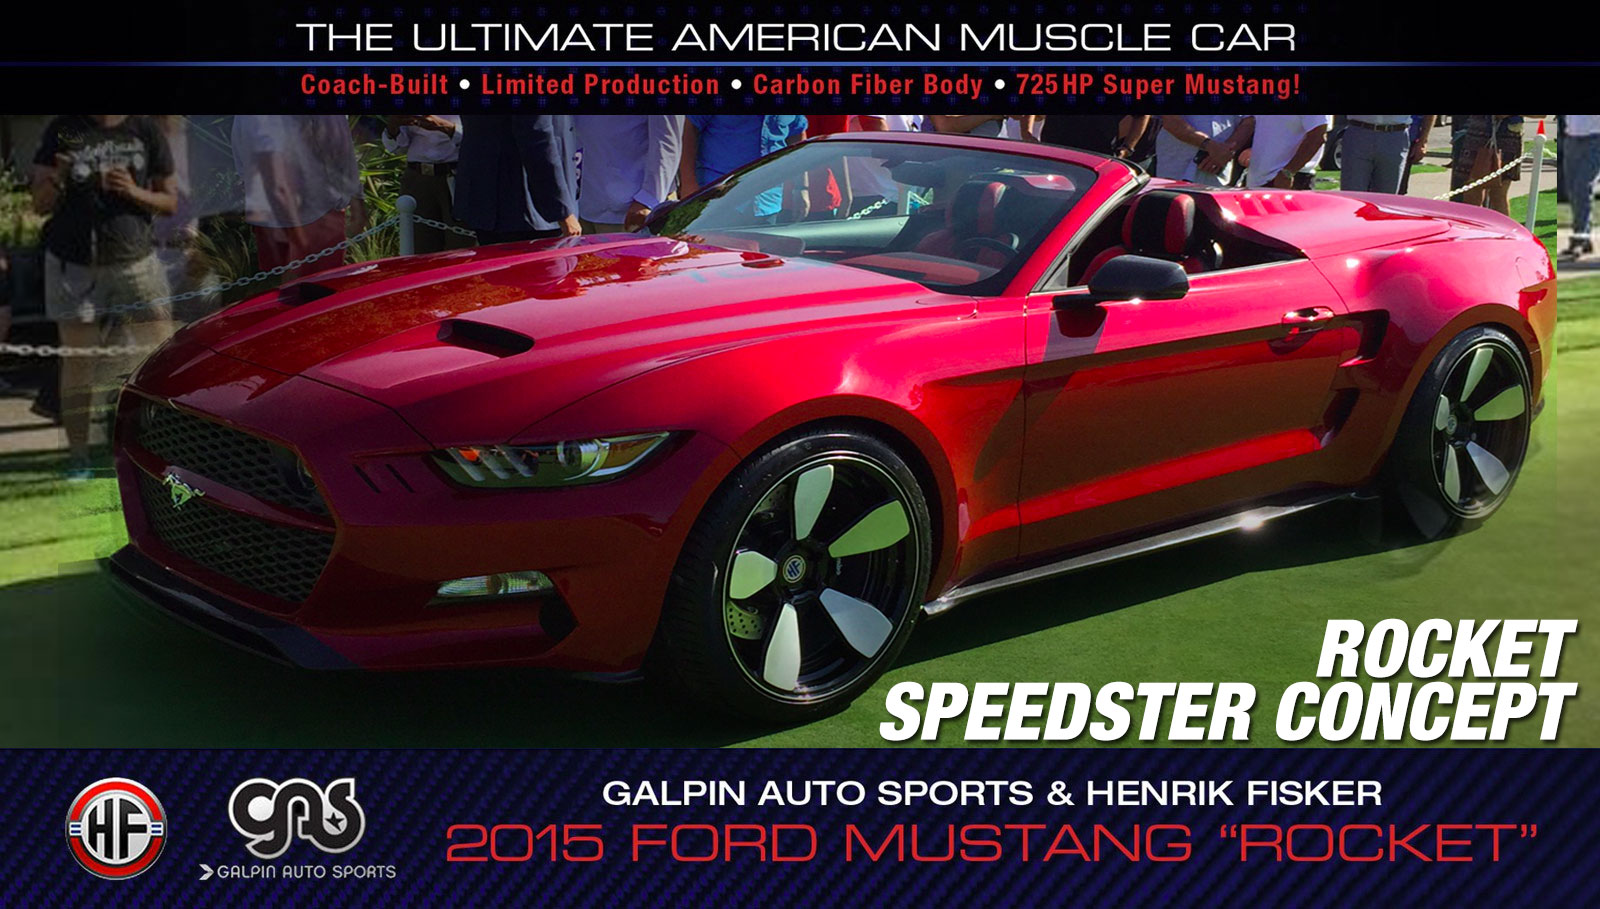 Fisker-Galpin Auto Sports Rocket - The Ultimate American Muscle Car